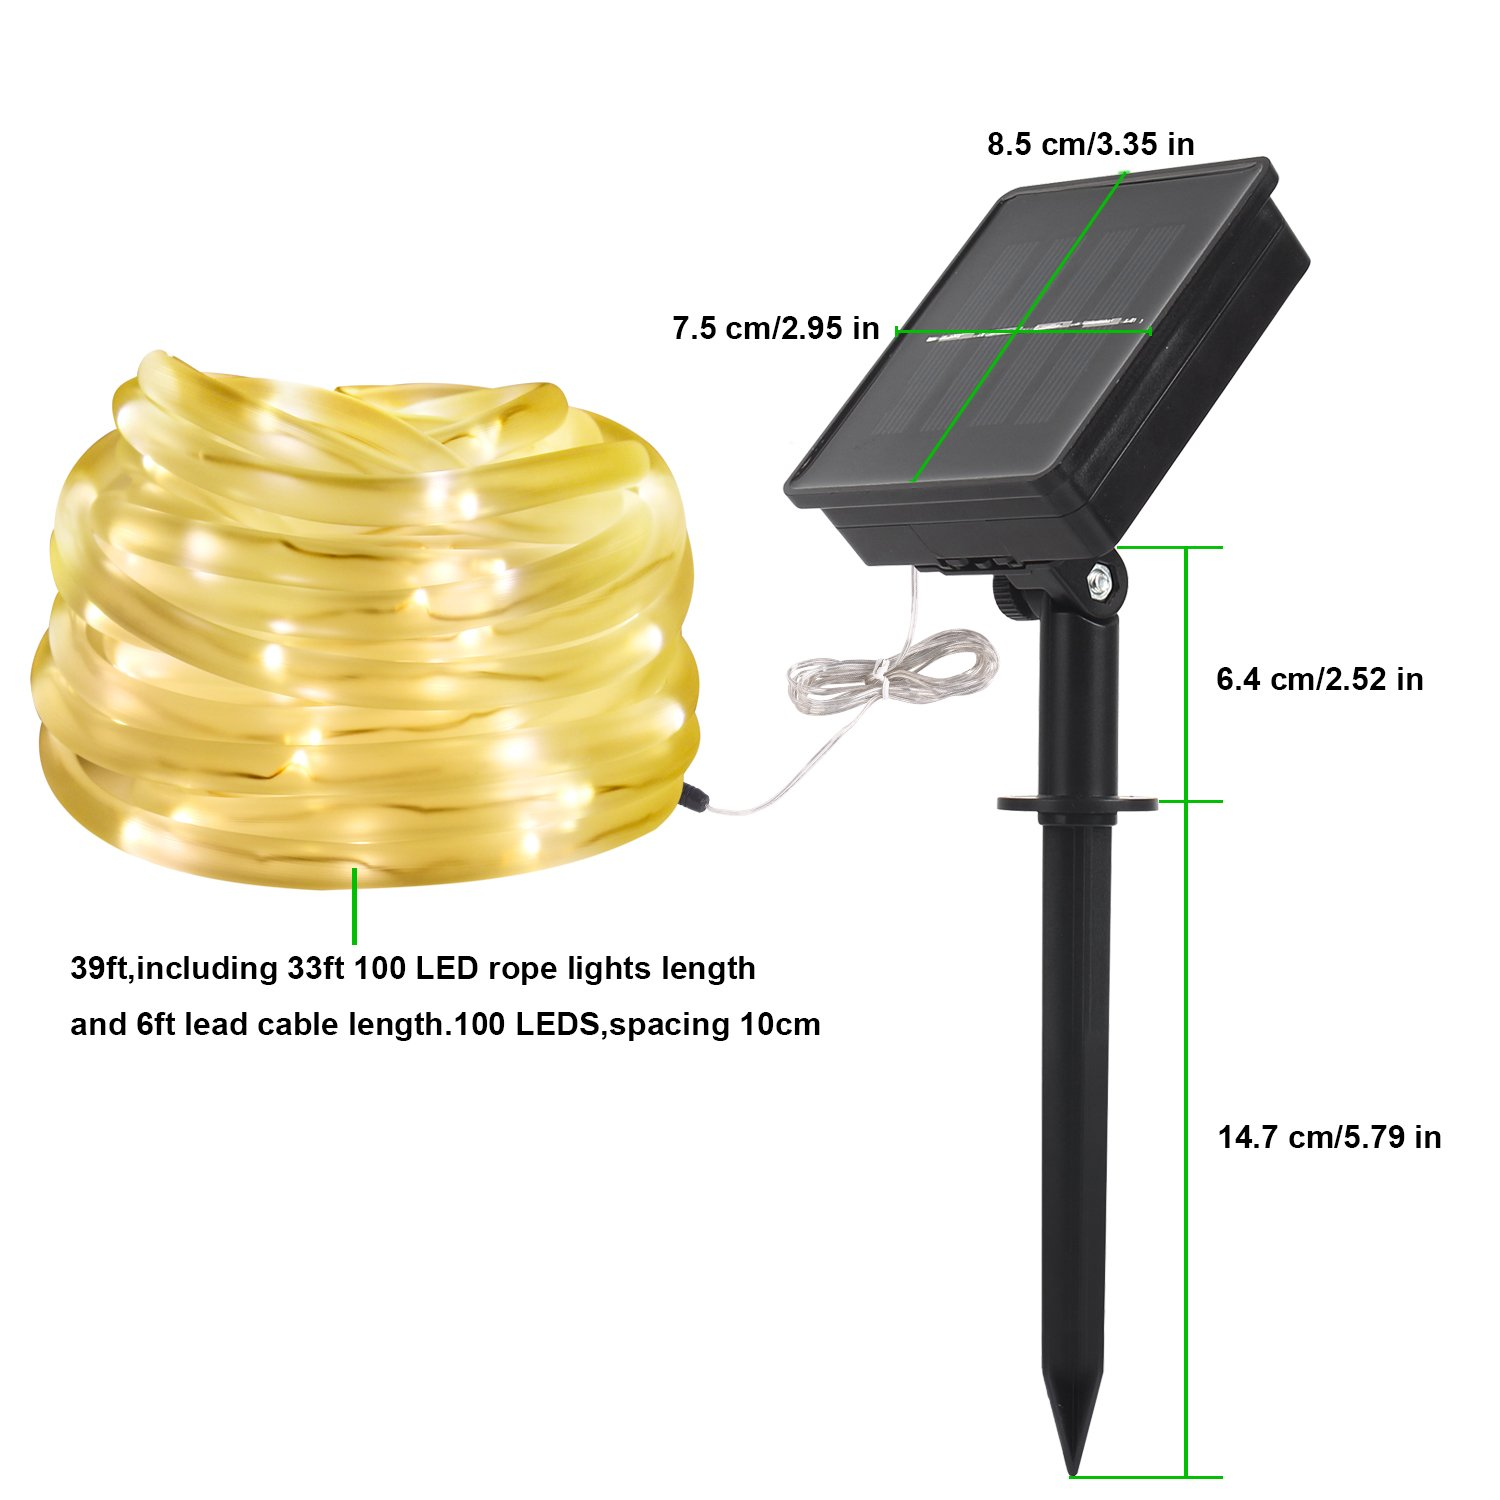 Lte Solar Led String Light Powered Rope Run Electrical Wires Underground To Reach Sheds Lights Patios And Waterproof Ip55 Warm White 3000k 33ft 100 Leds Decoration For Gardens